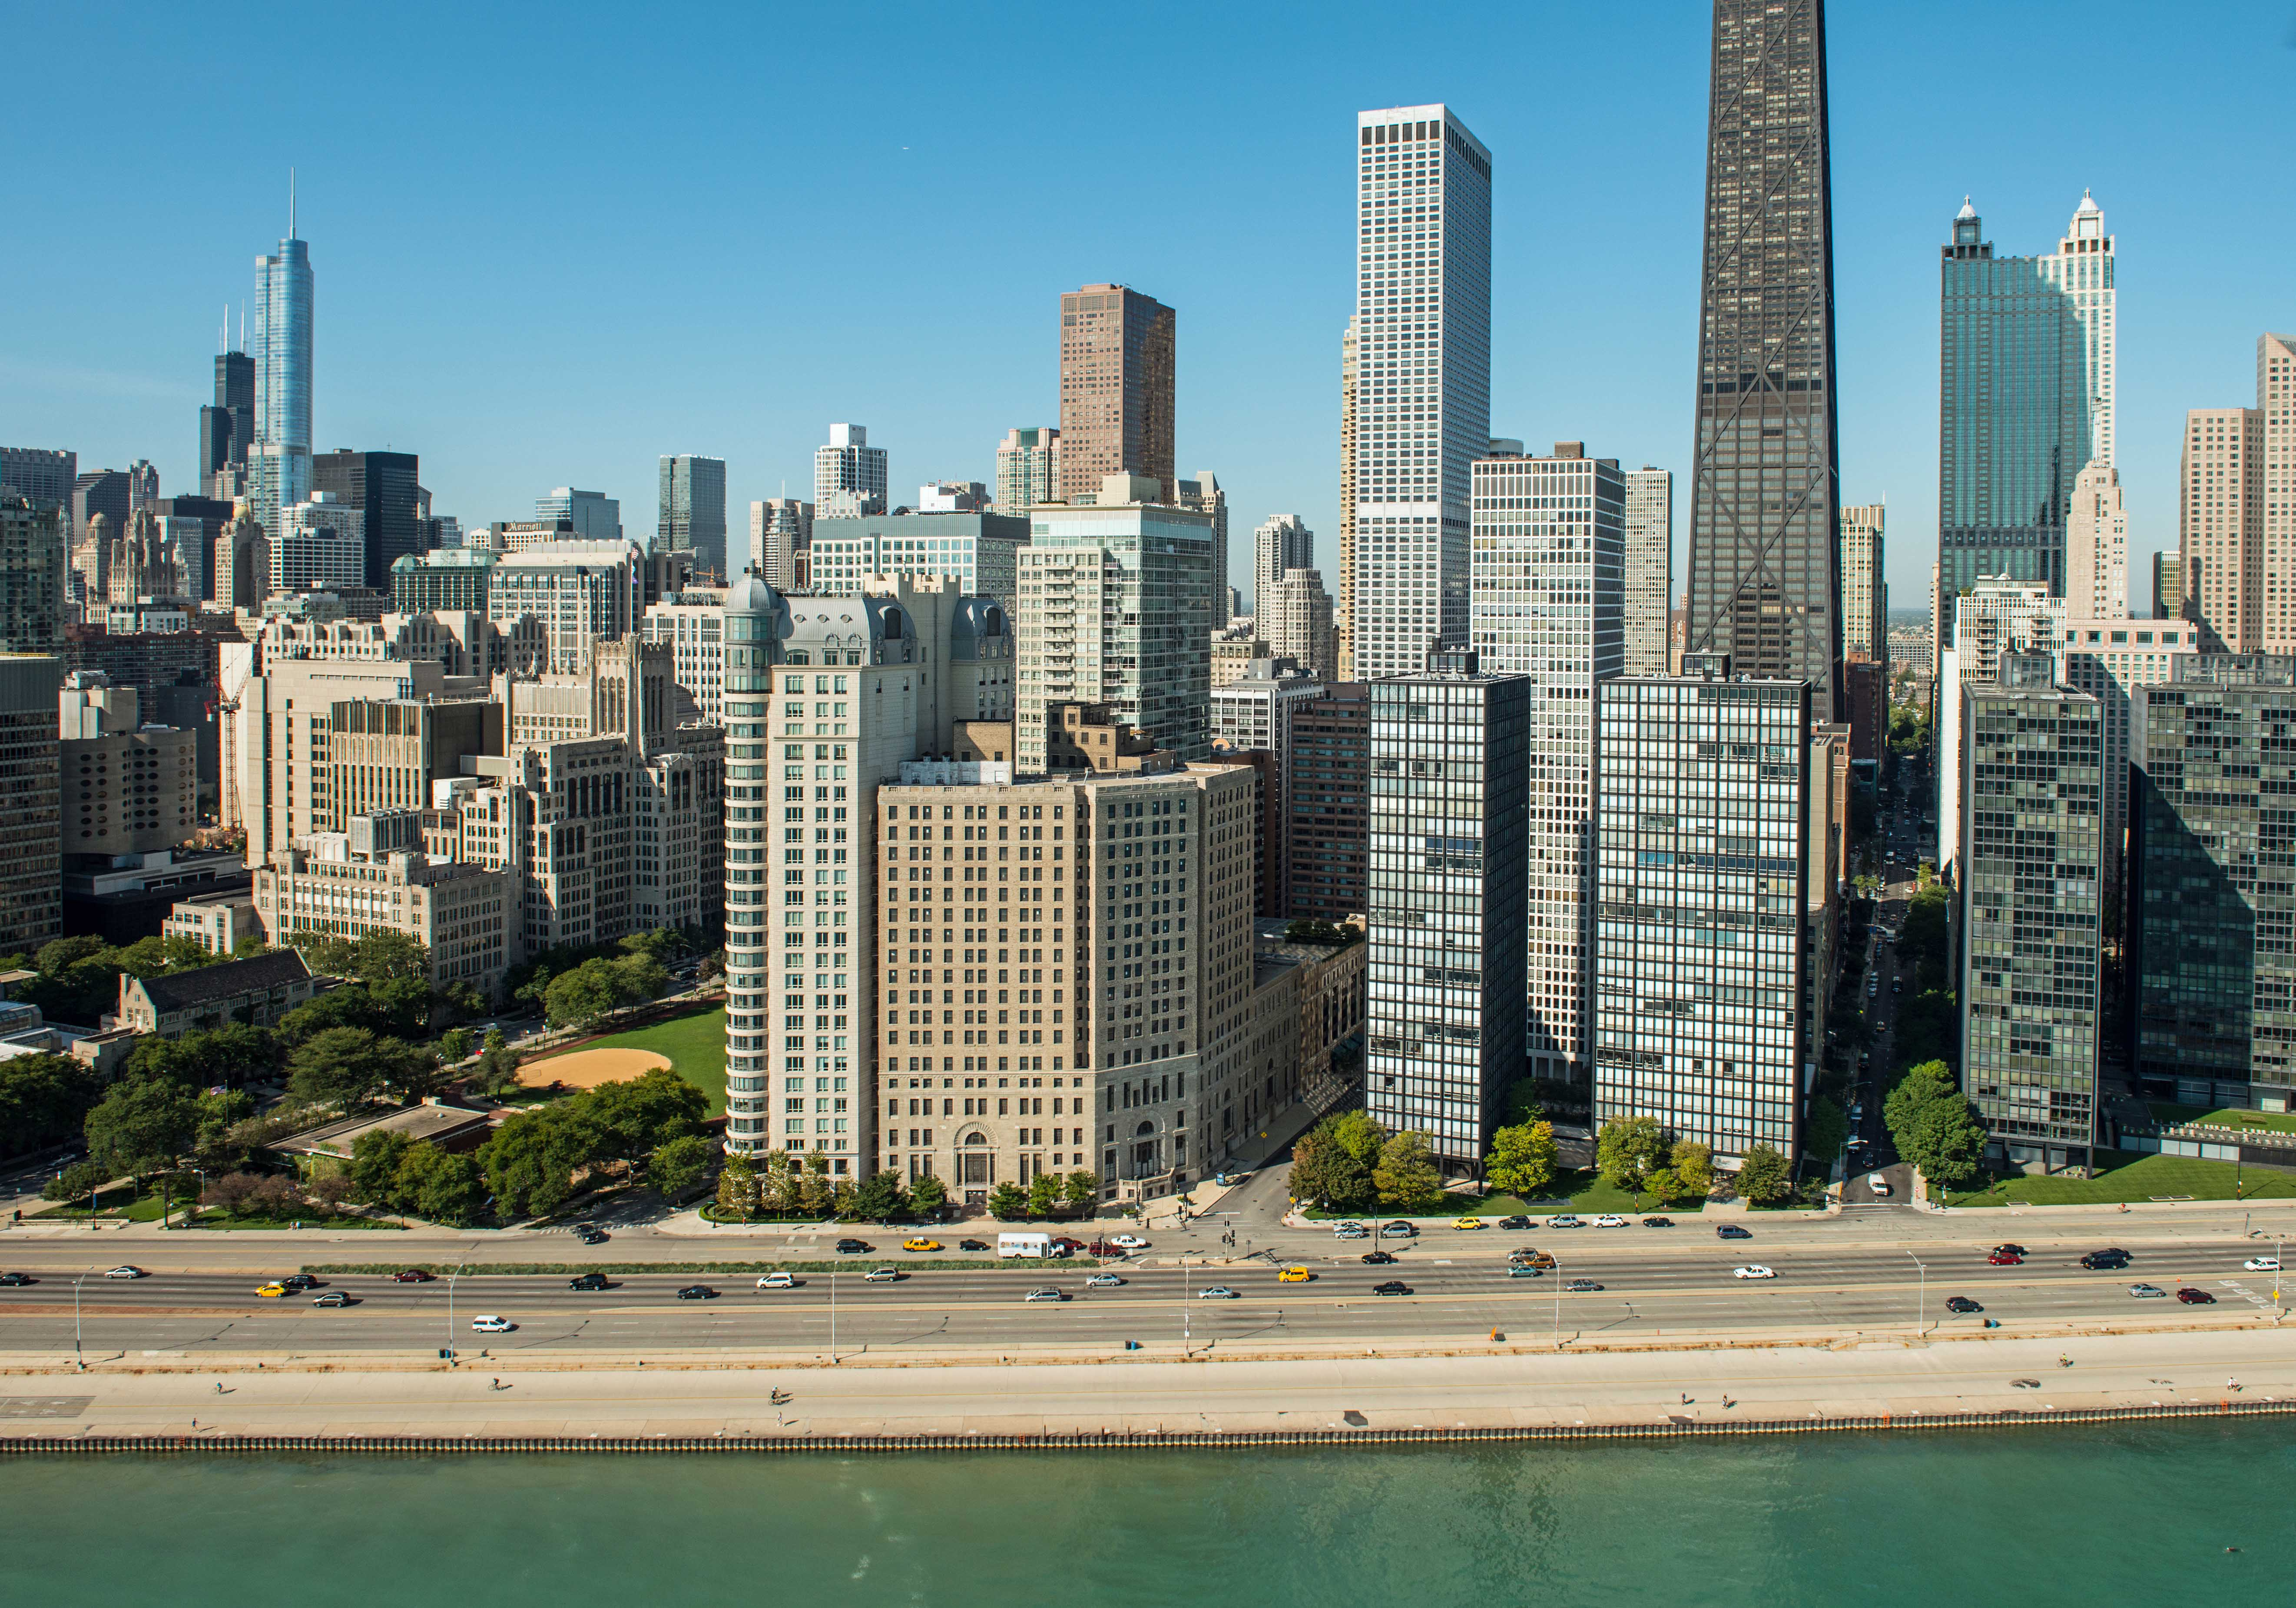 lakeside chicagos lakeshore drive - HD 5285×3702